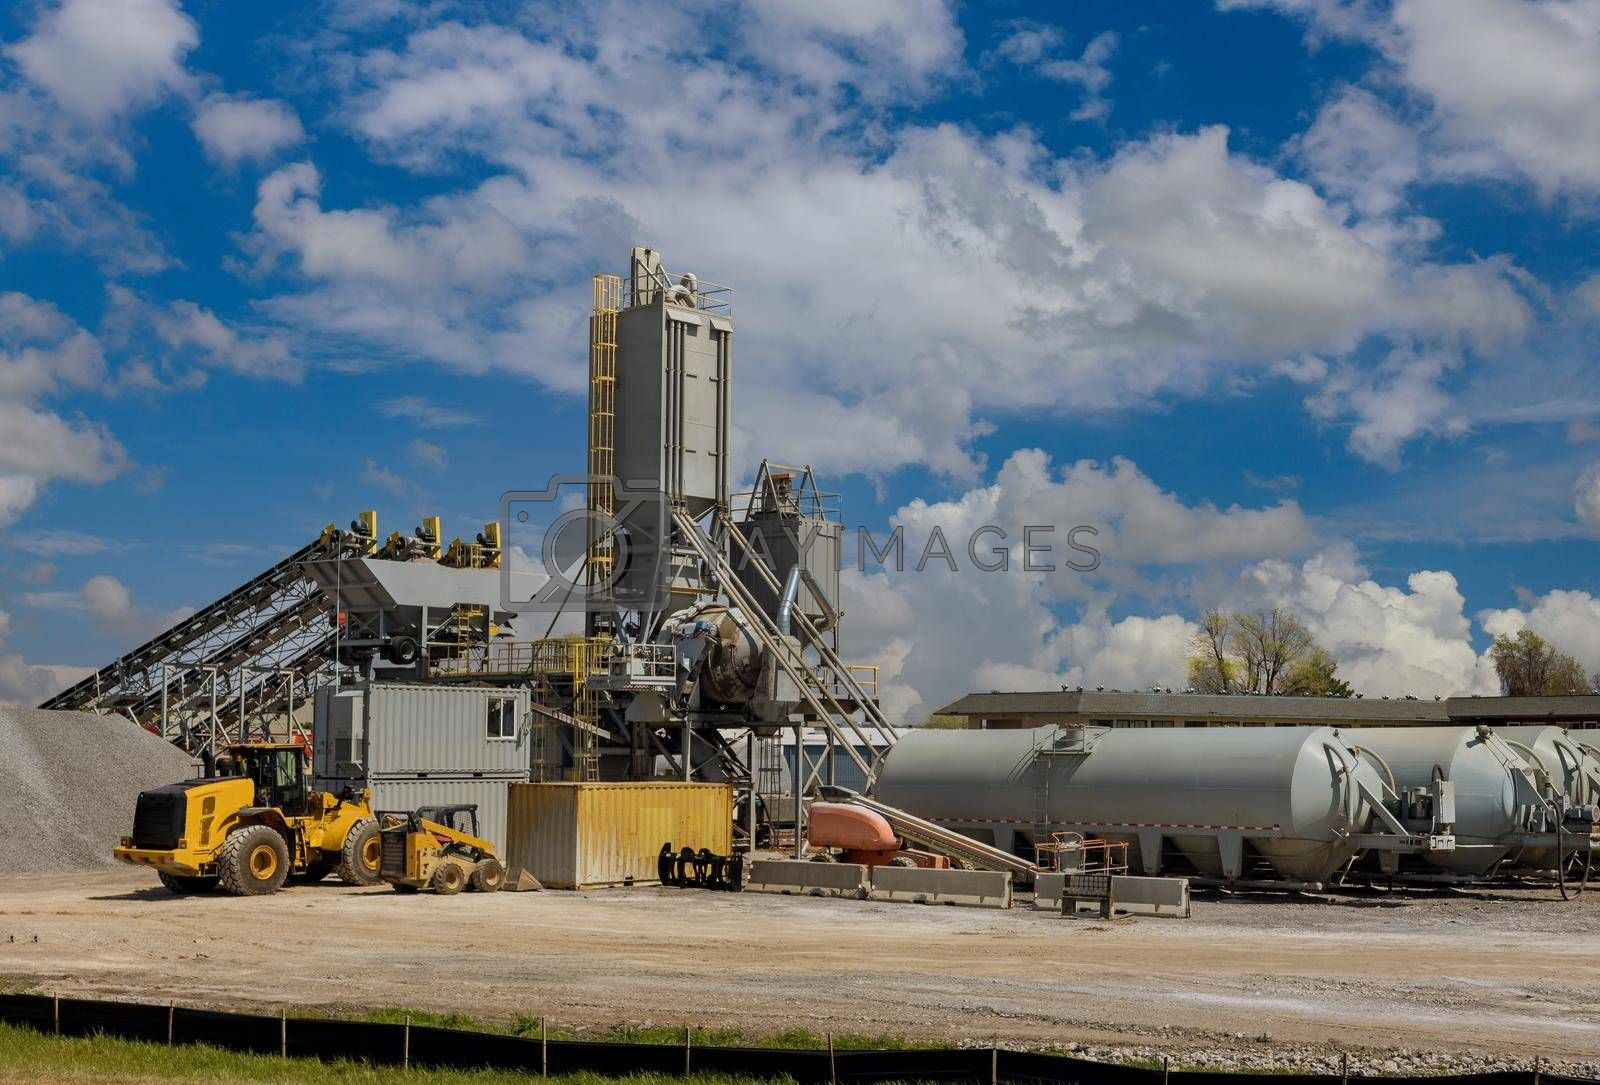 Sand Making Plant in crushing factory on machines and equipment for crushing, grinding stone bulk materials.